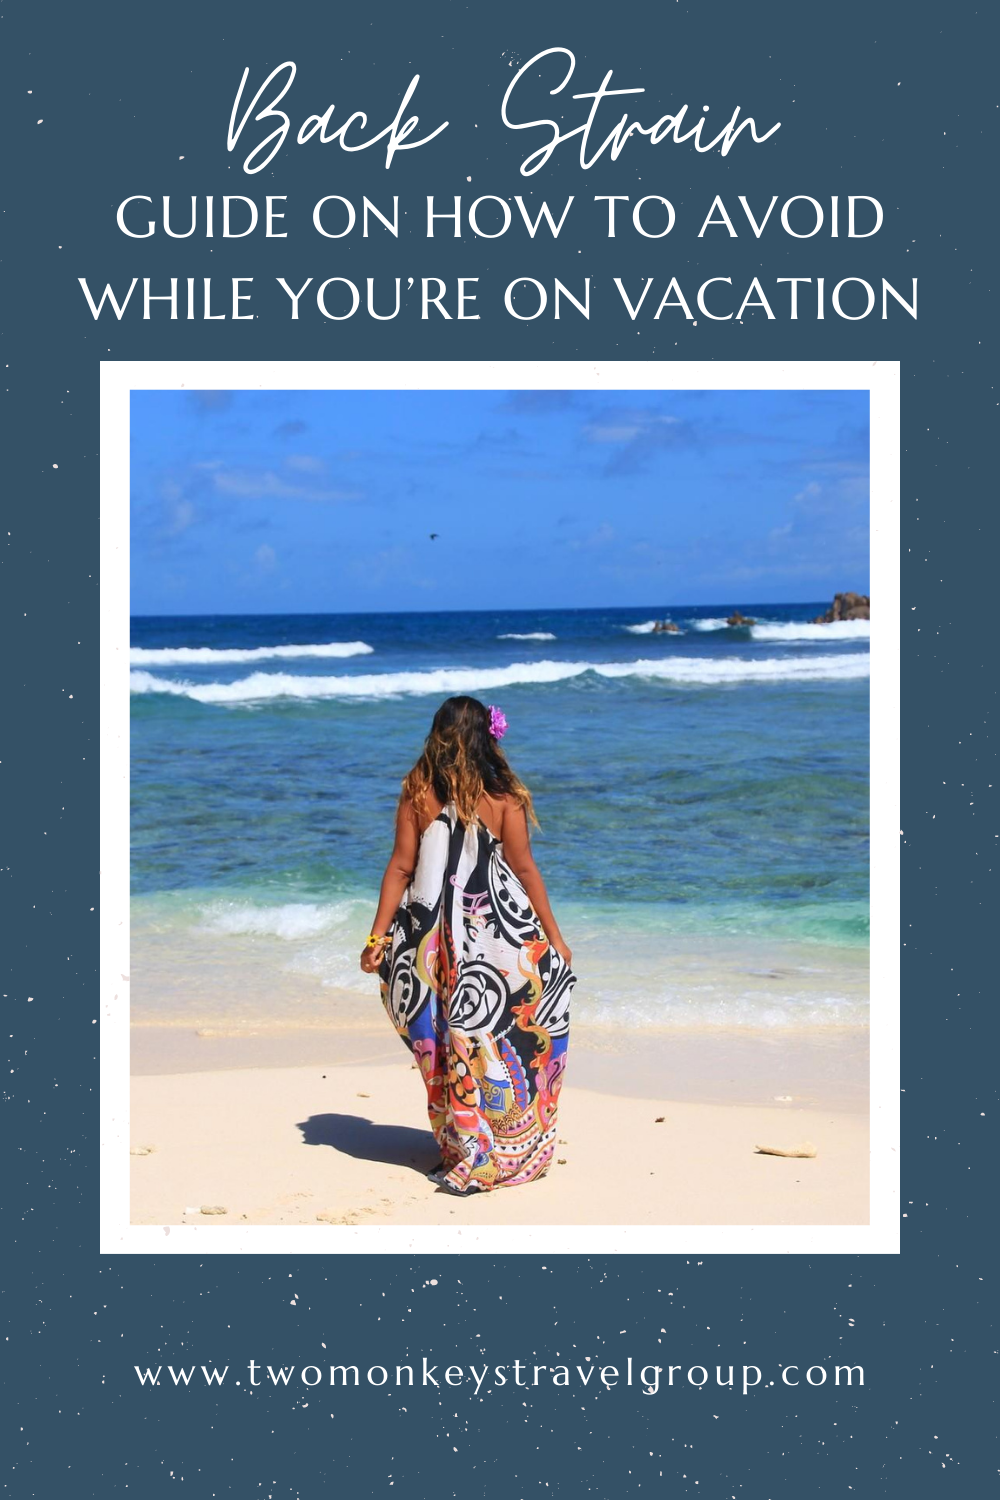 How To Avoid Back Strain While You're On Vacation